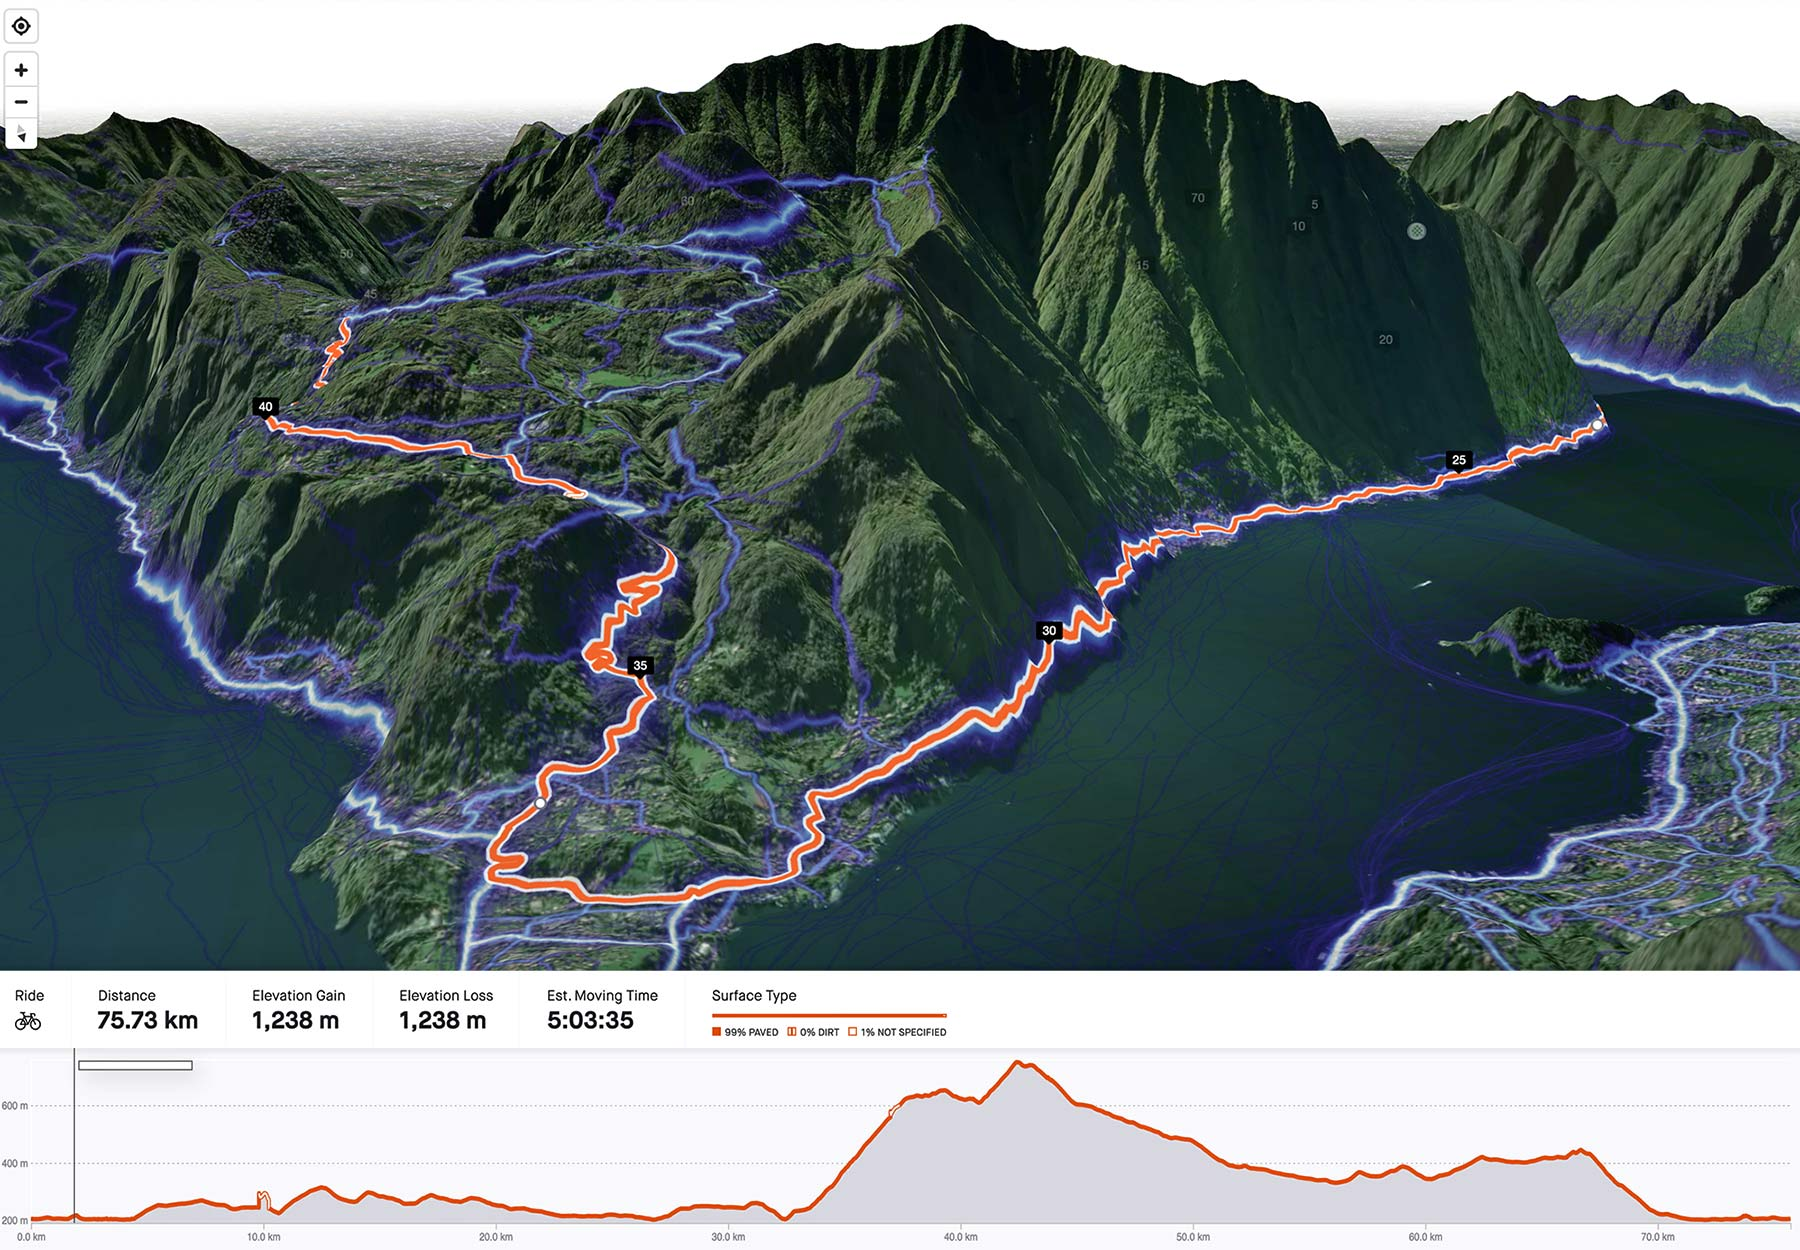 Strava 3D Terrain Route Builder view for subscribers, Ghisallo